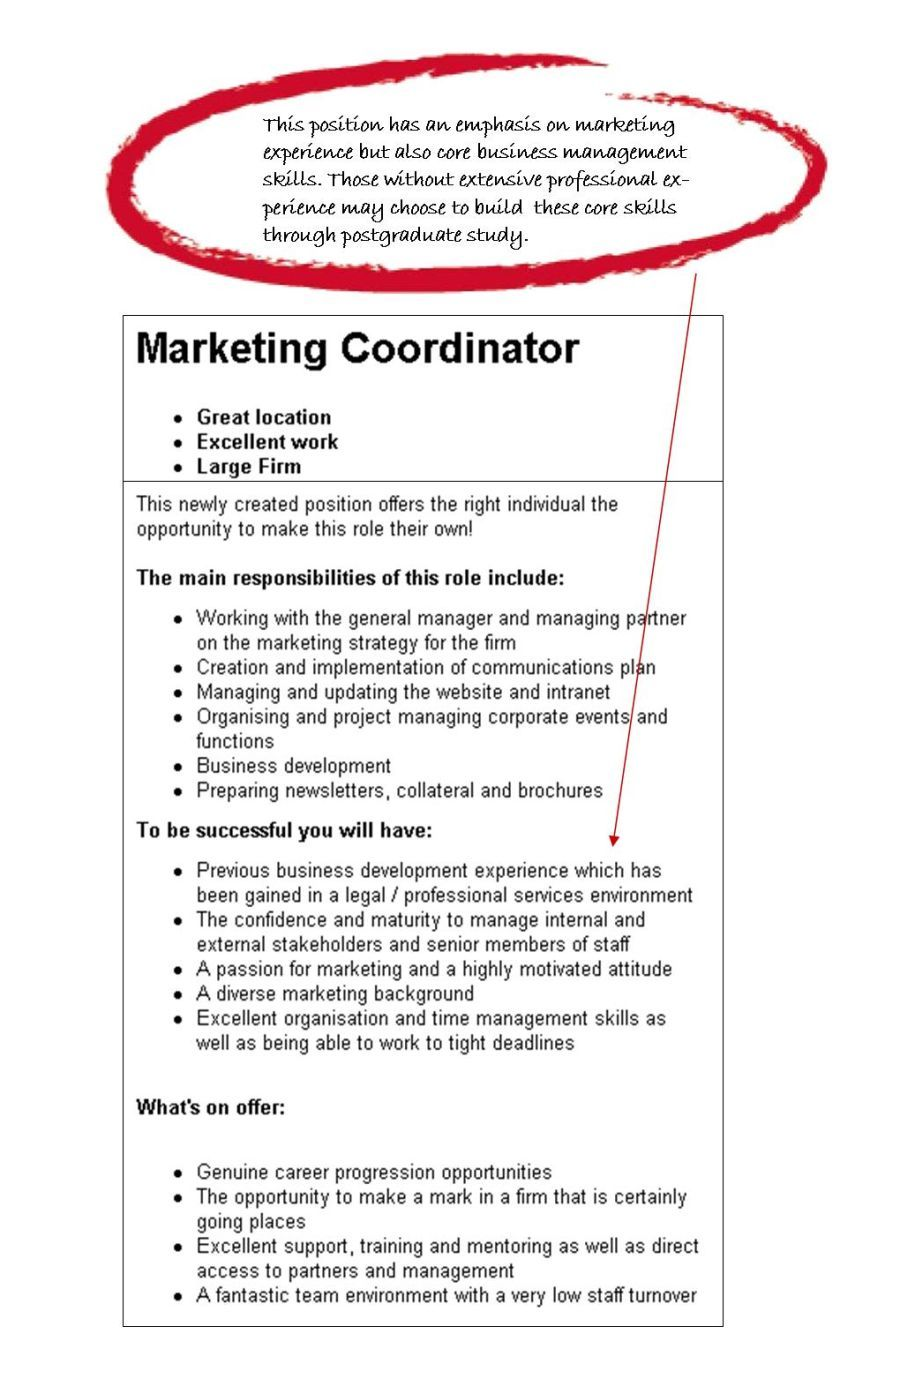 Writing An Objective For Resume Objectives For Resume  Resume  Pinterest  Resume Objective And